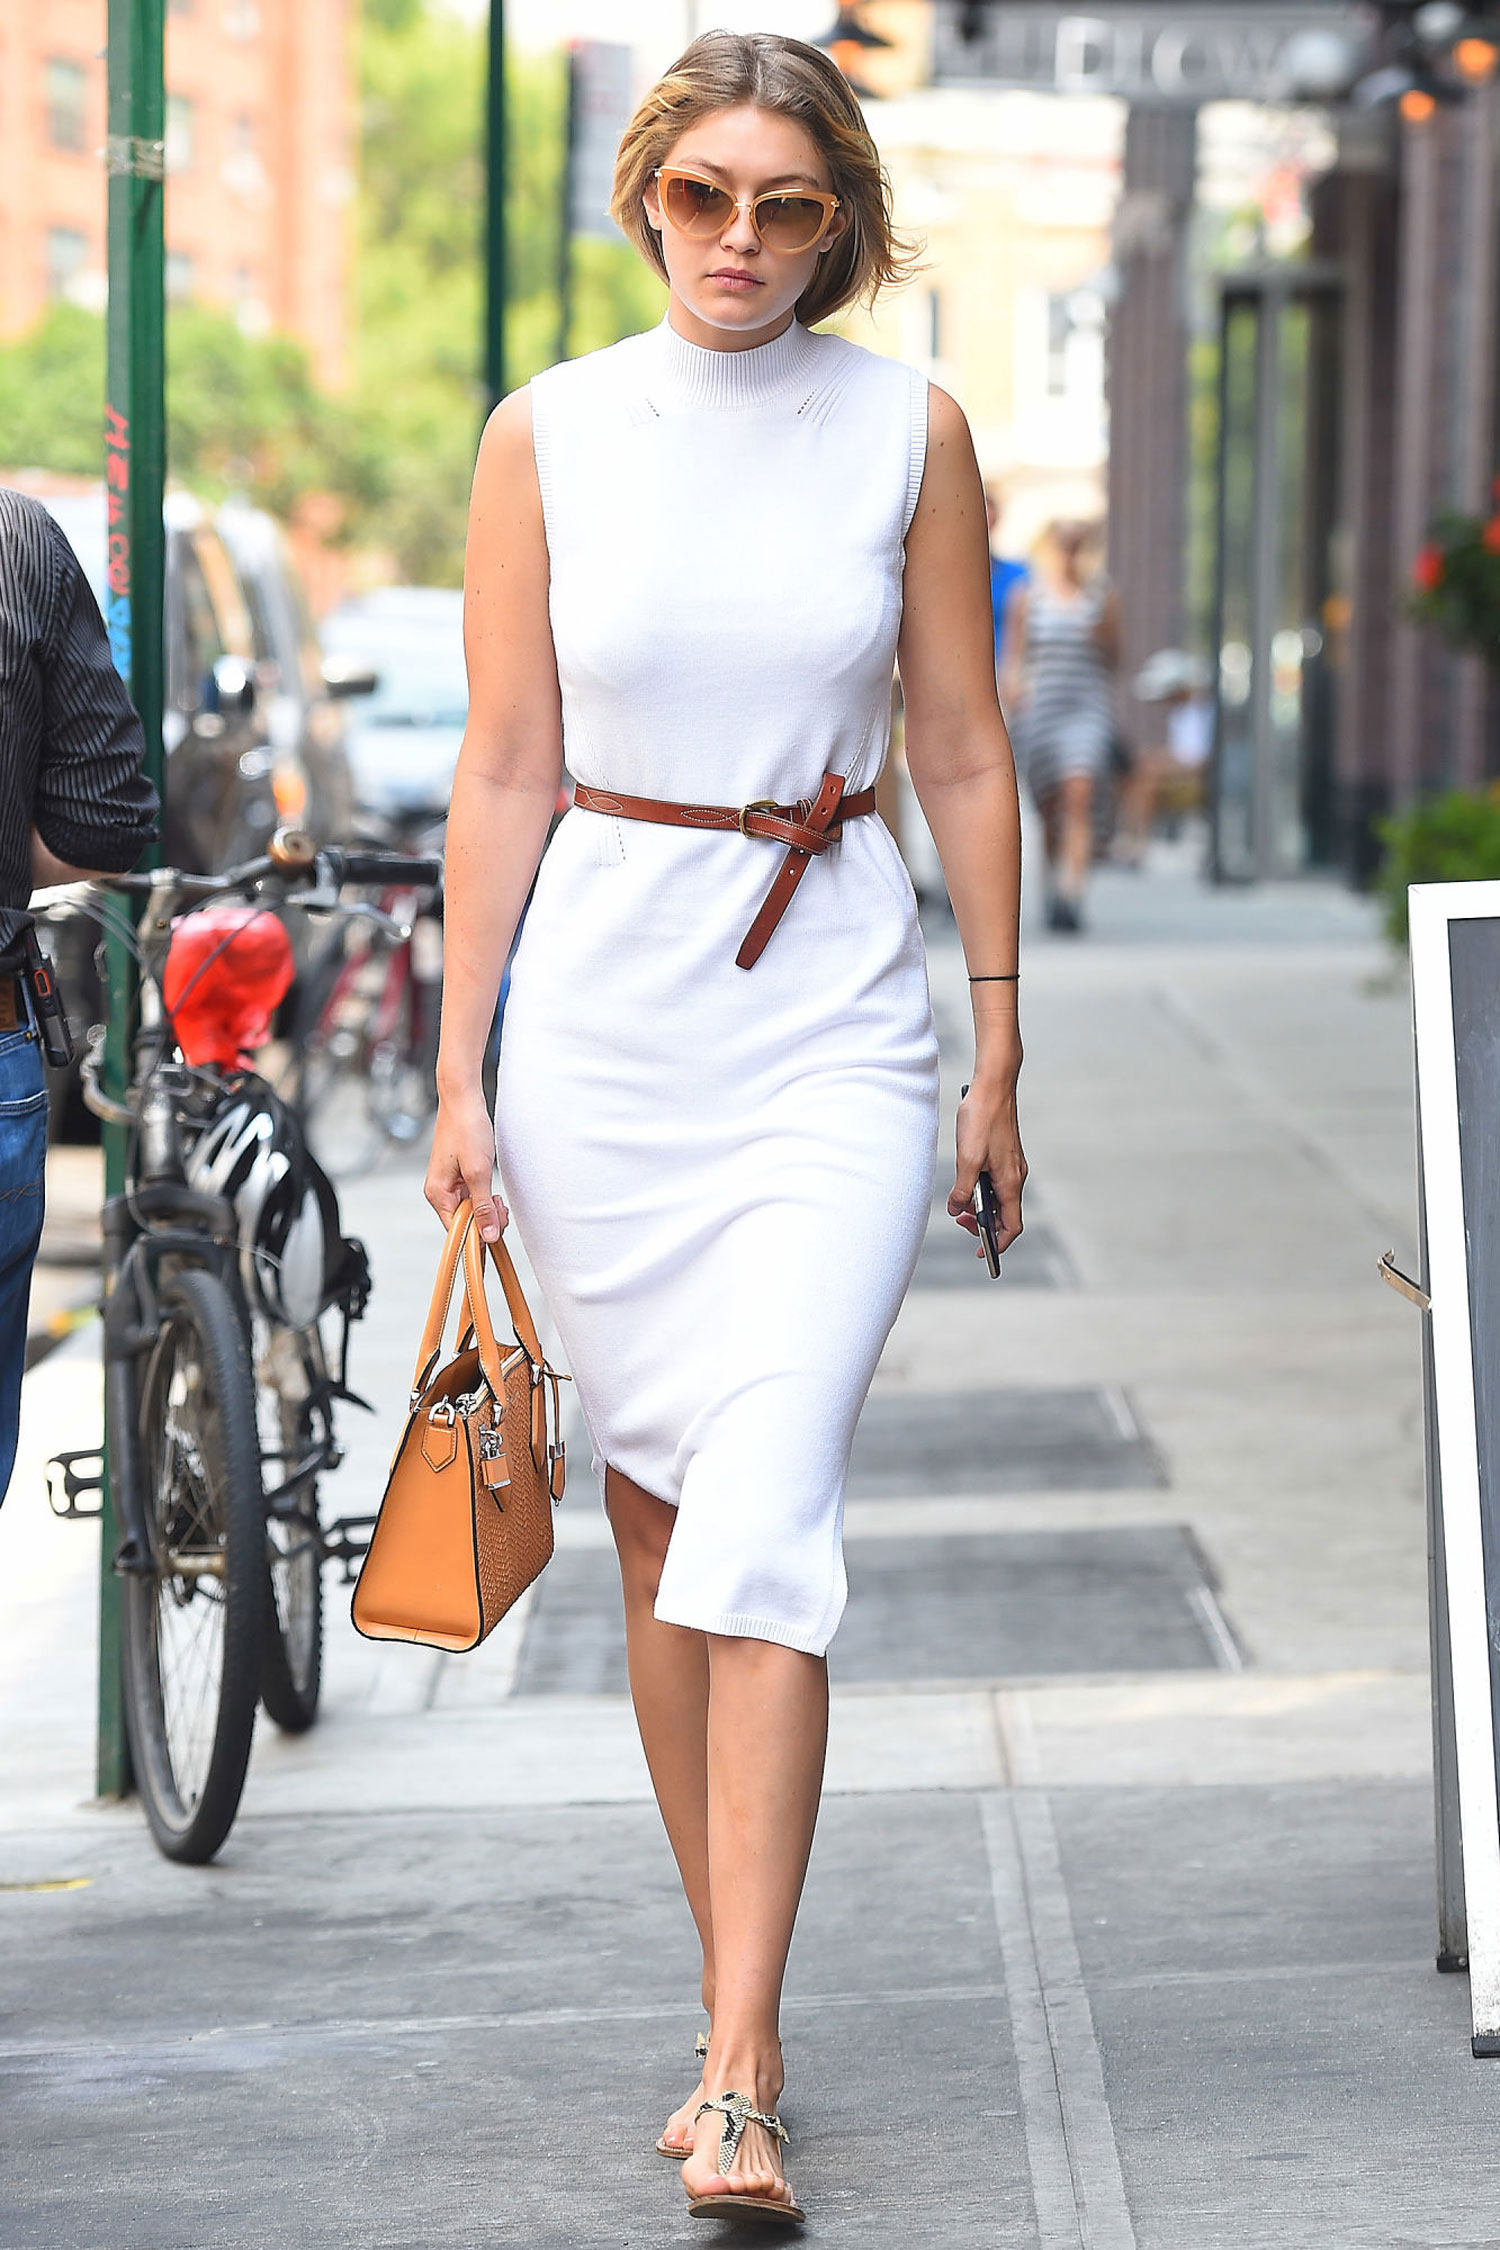 hbz-all-white-outfits-11-gigi-hadid-inspo All White Party Dress Ideas for Women-19 Perfect White Outfits